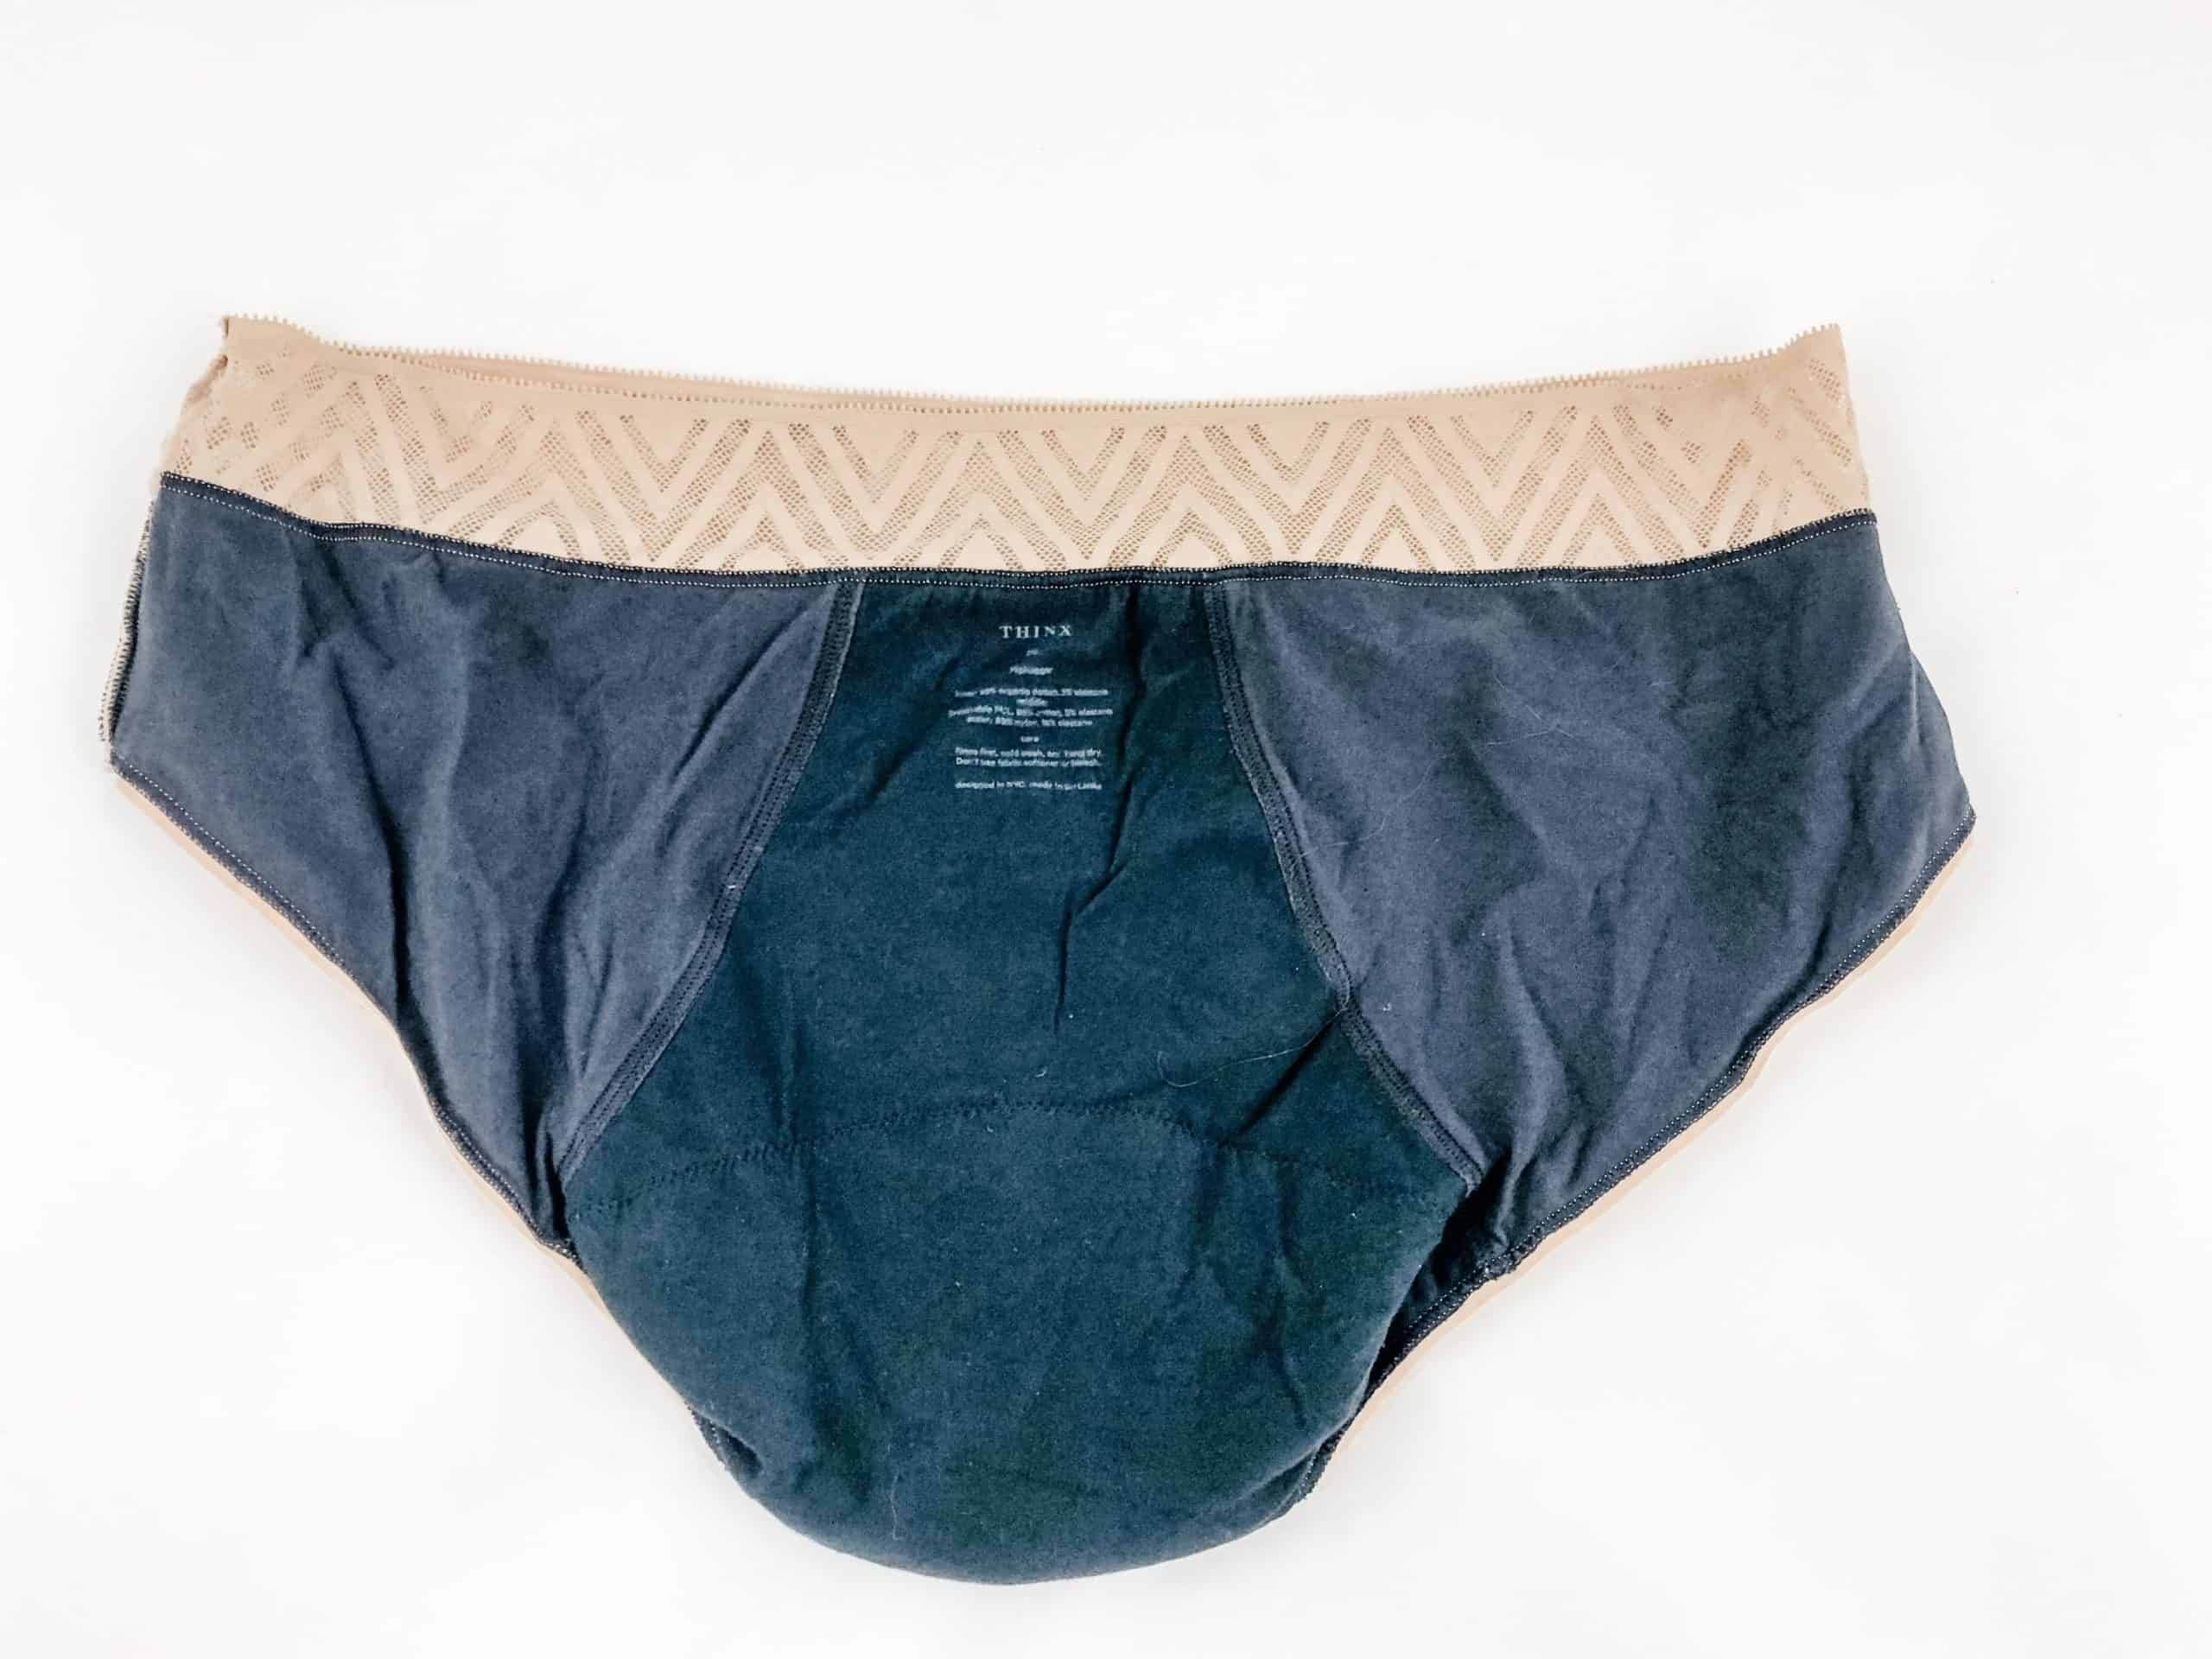 Thinx Period Panties Test Positive for Toxic PFAS, But There Are Safer Alternatives! 3